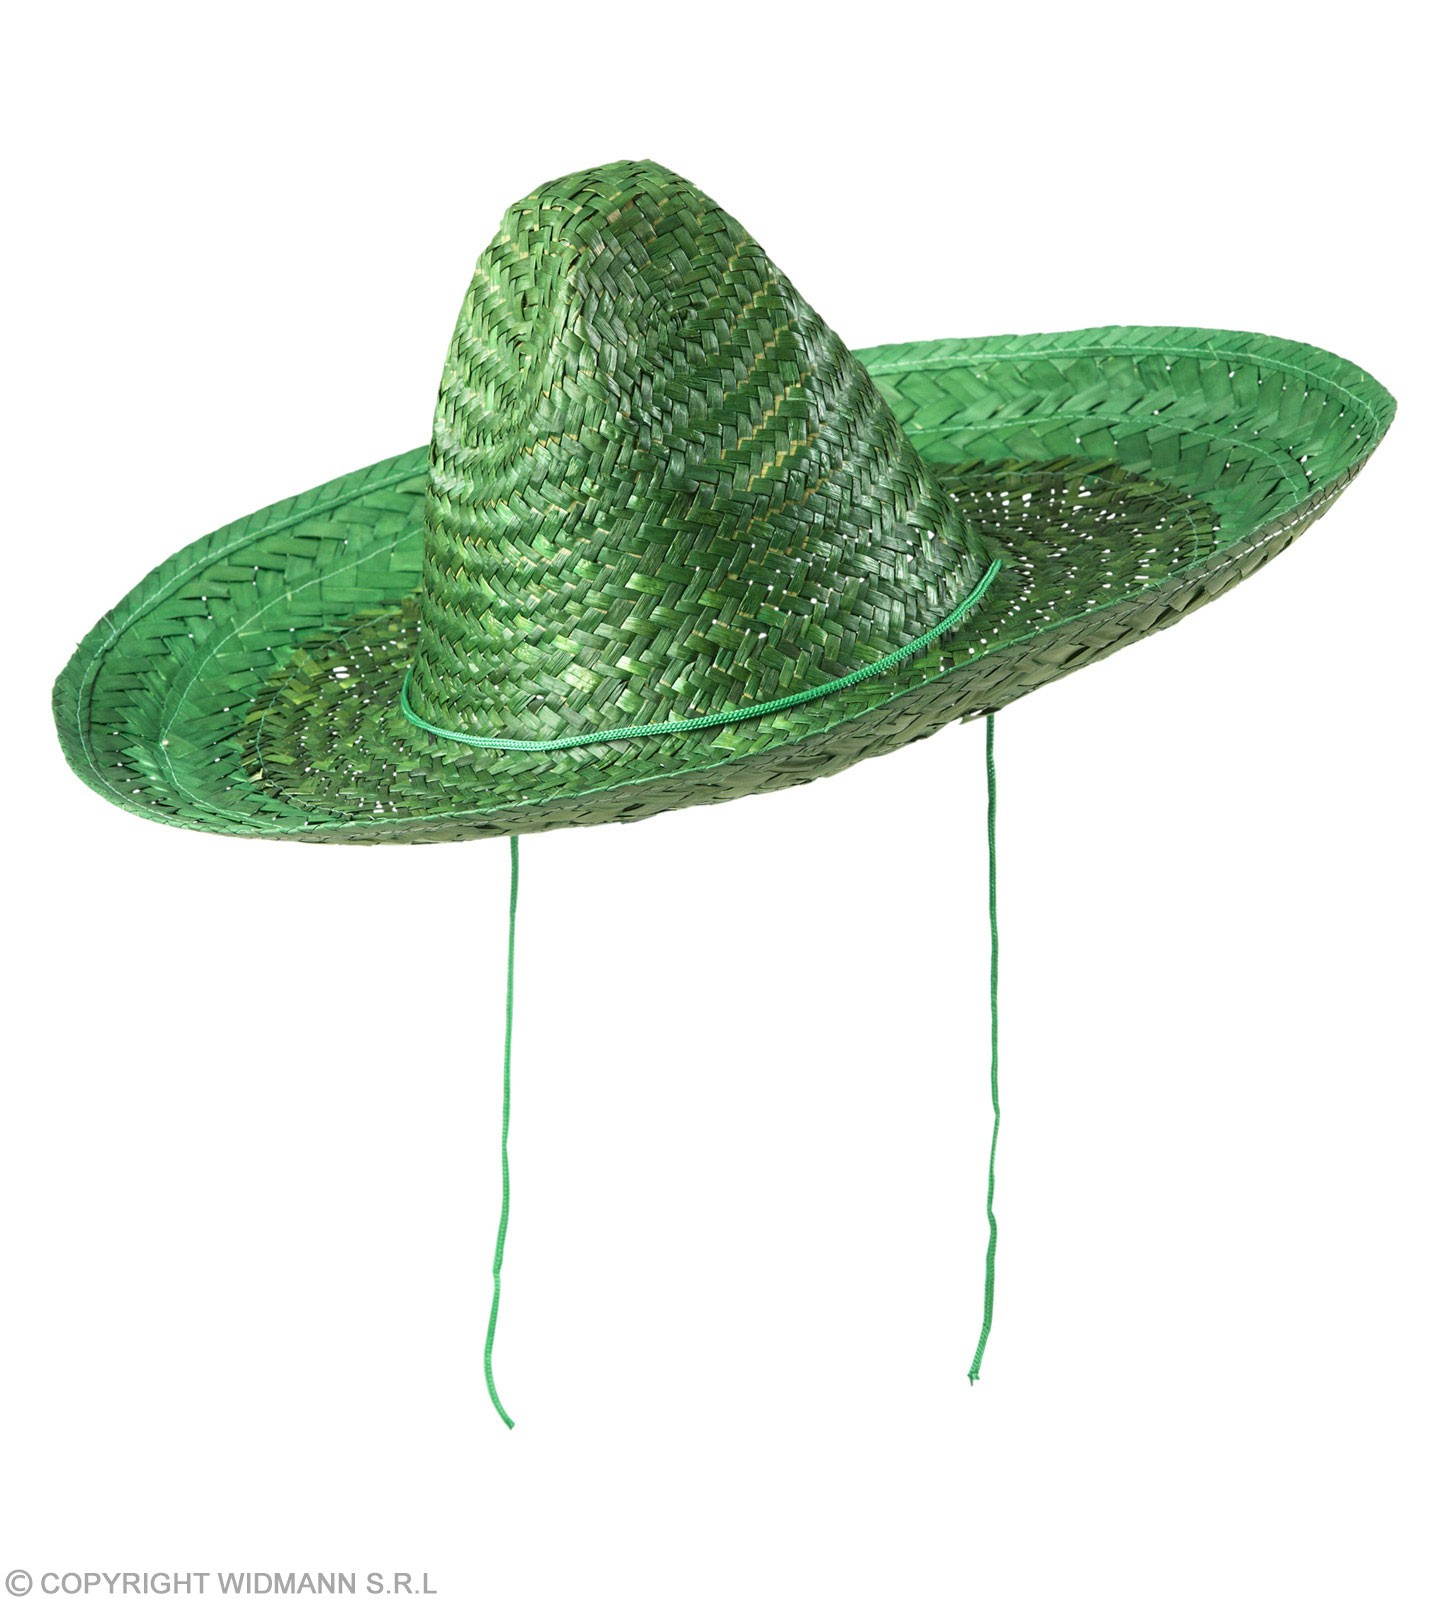 3a5789619e8e22 Buy Boys Sombrero 48Cm - Green Hats - (Green) - Largest online fancy dress  range in the UK - Price Guarantee & FREE Delivery